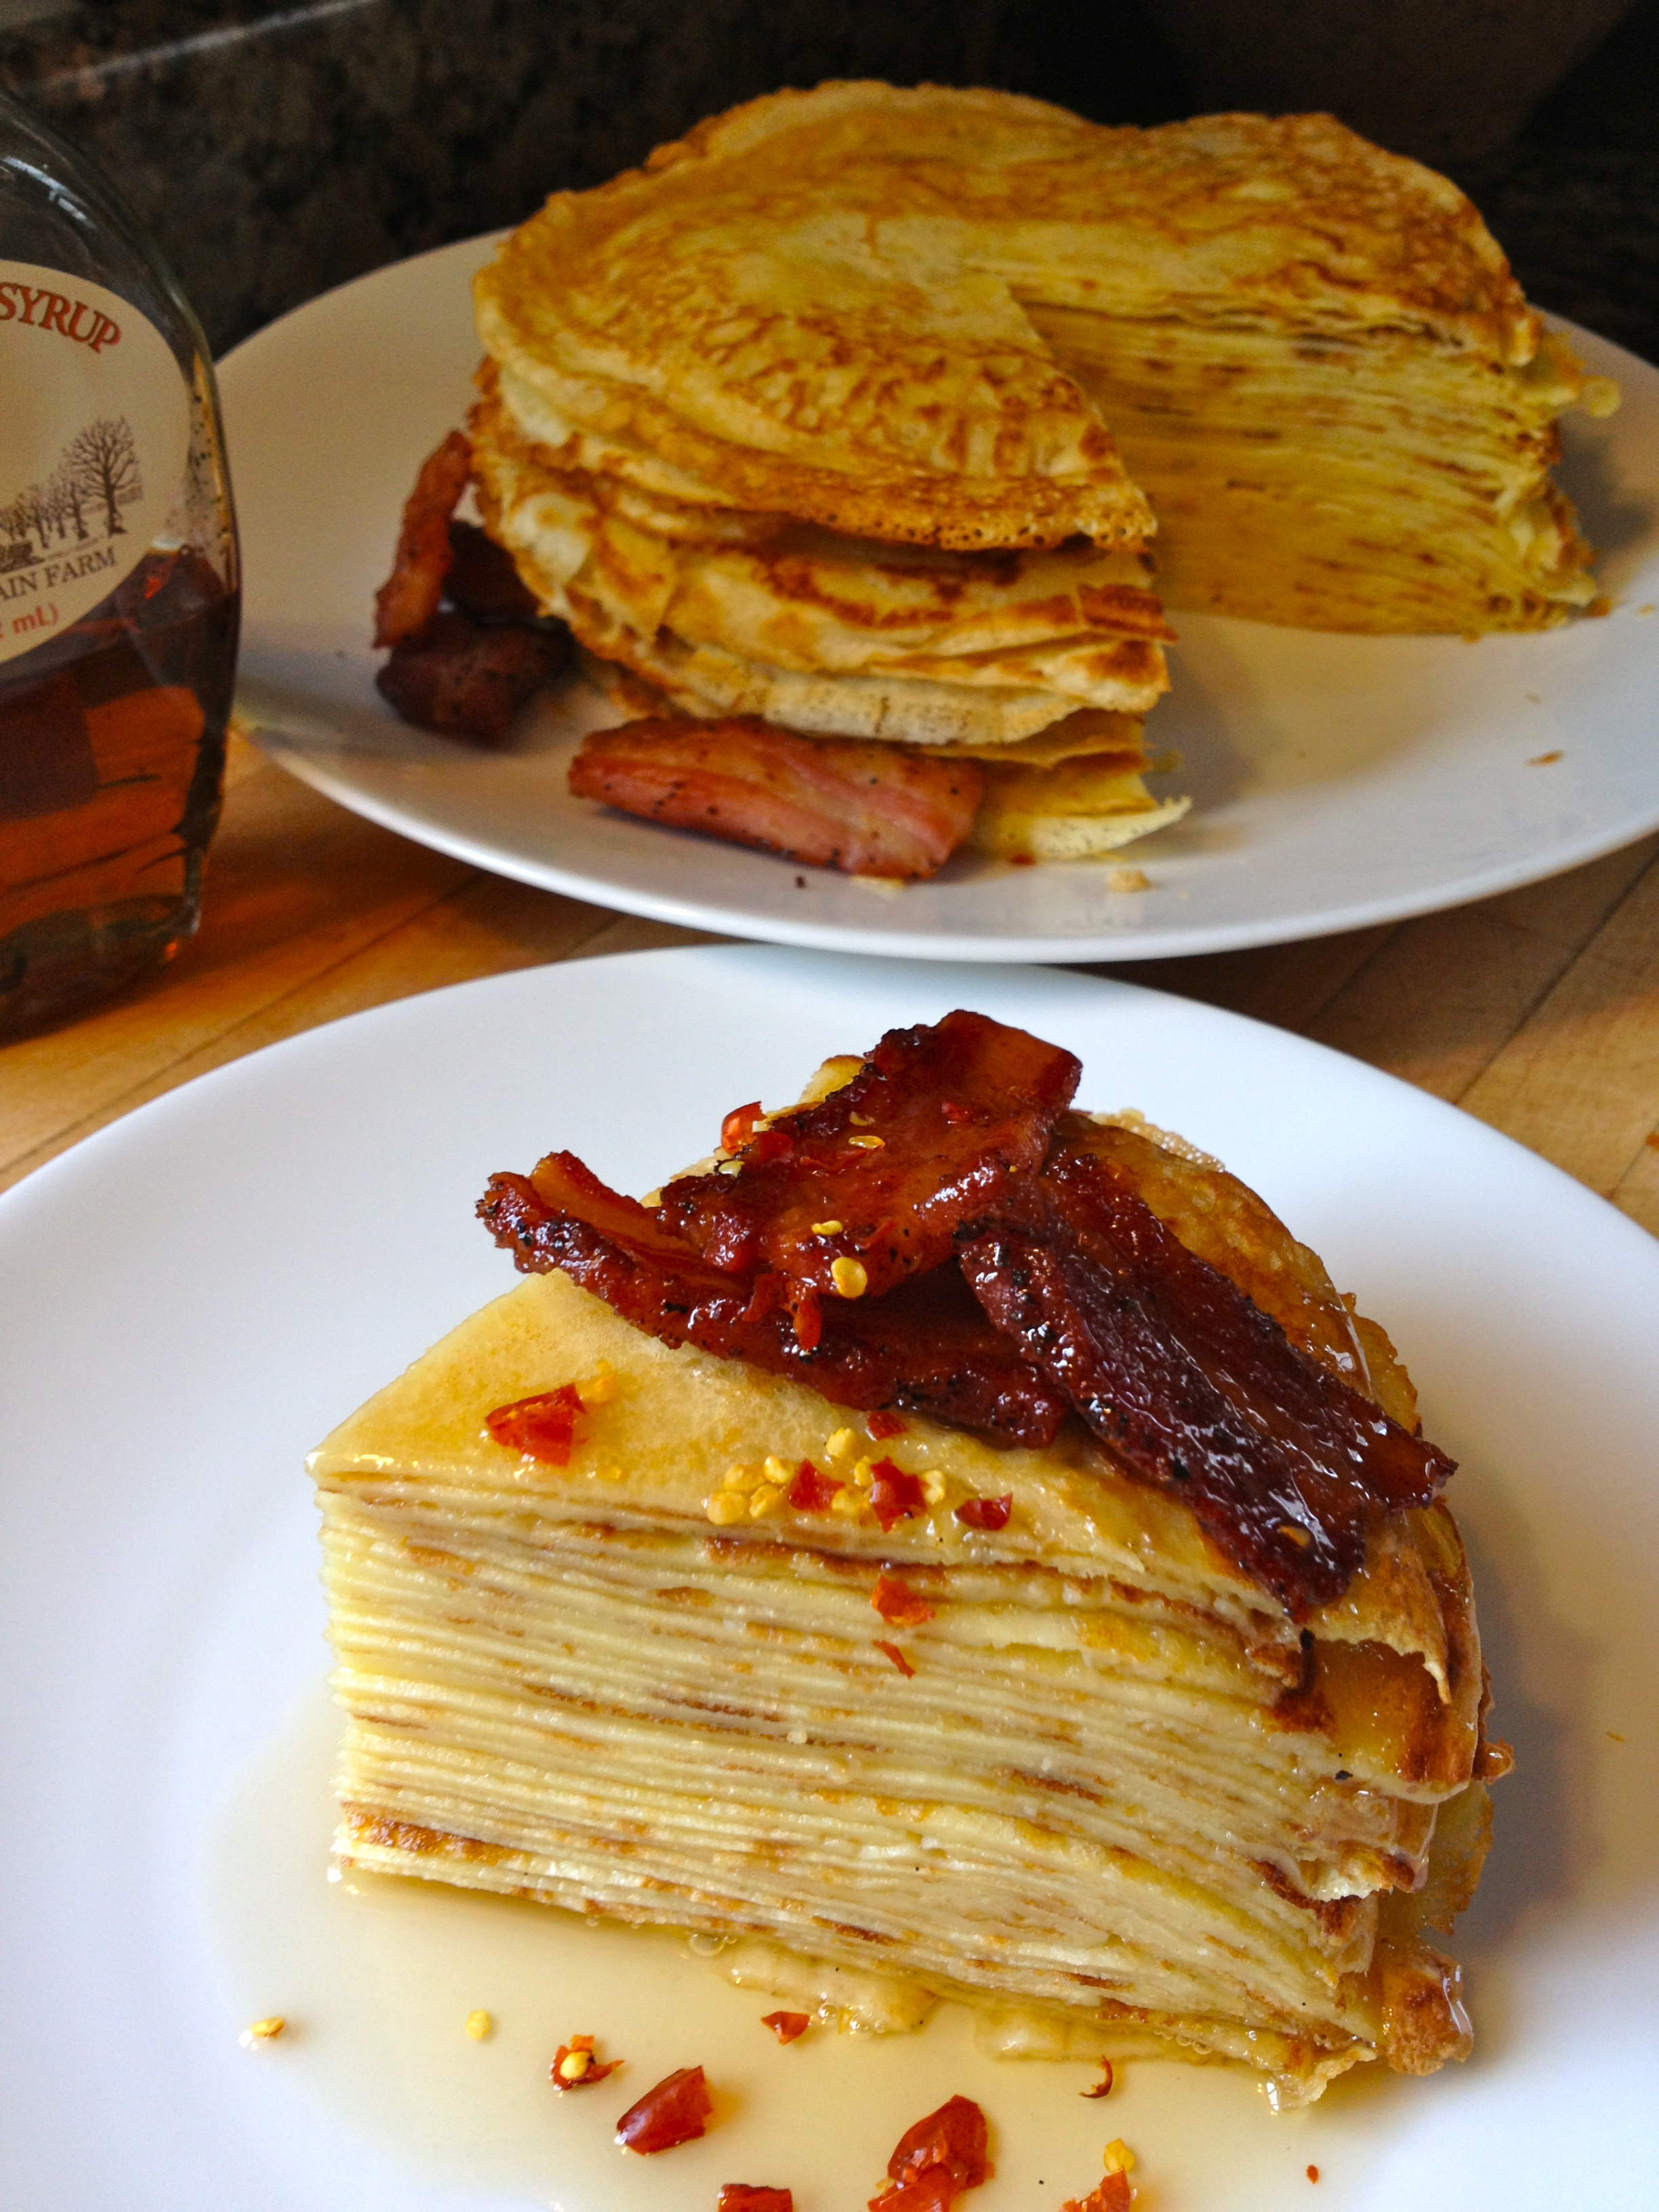 Pancakes with Bacon and Chili | Spry on Food